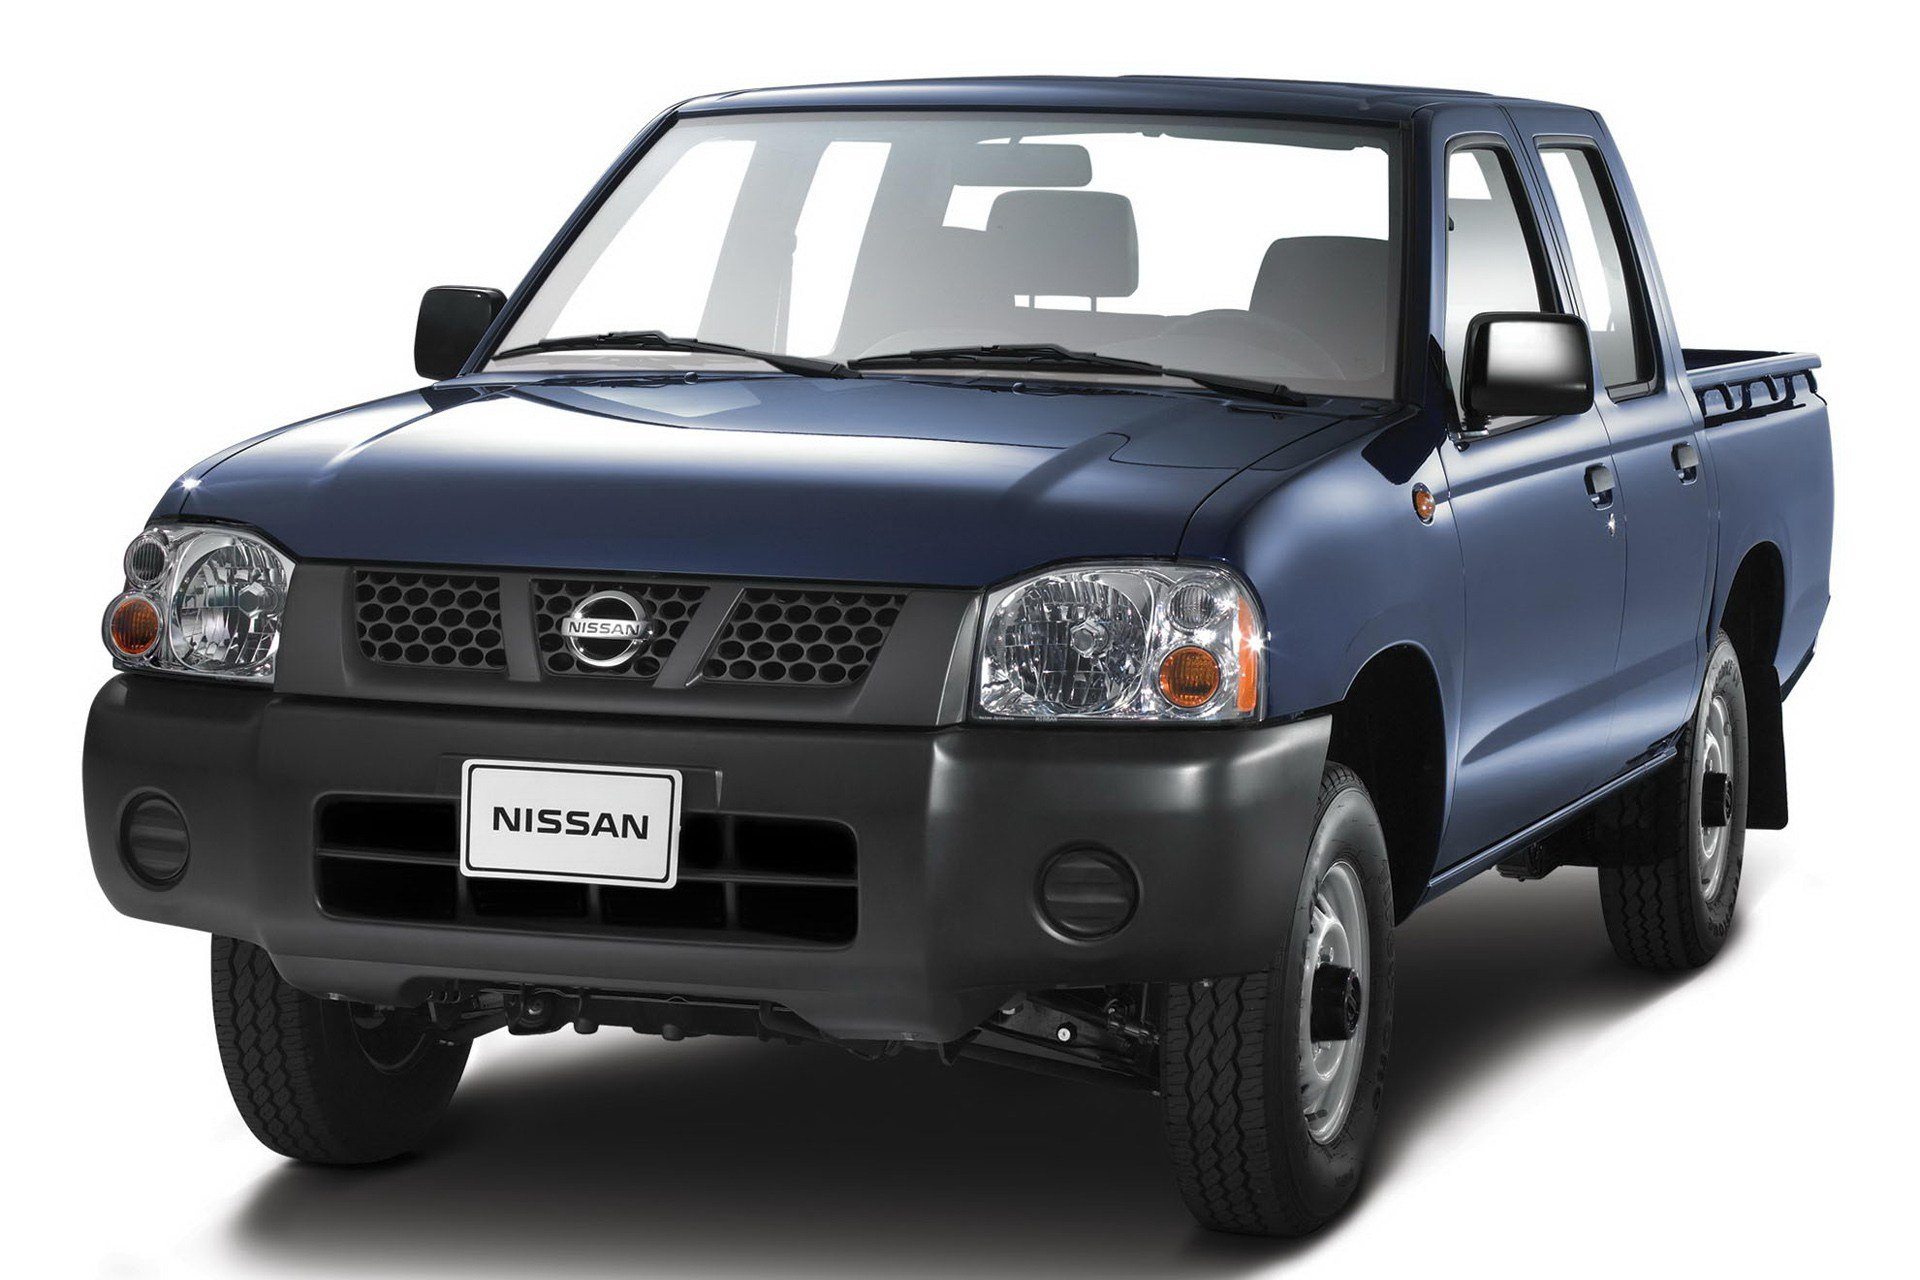 New Nissan Np300 Picture 66936 Nissan Photo Gallery On This Month